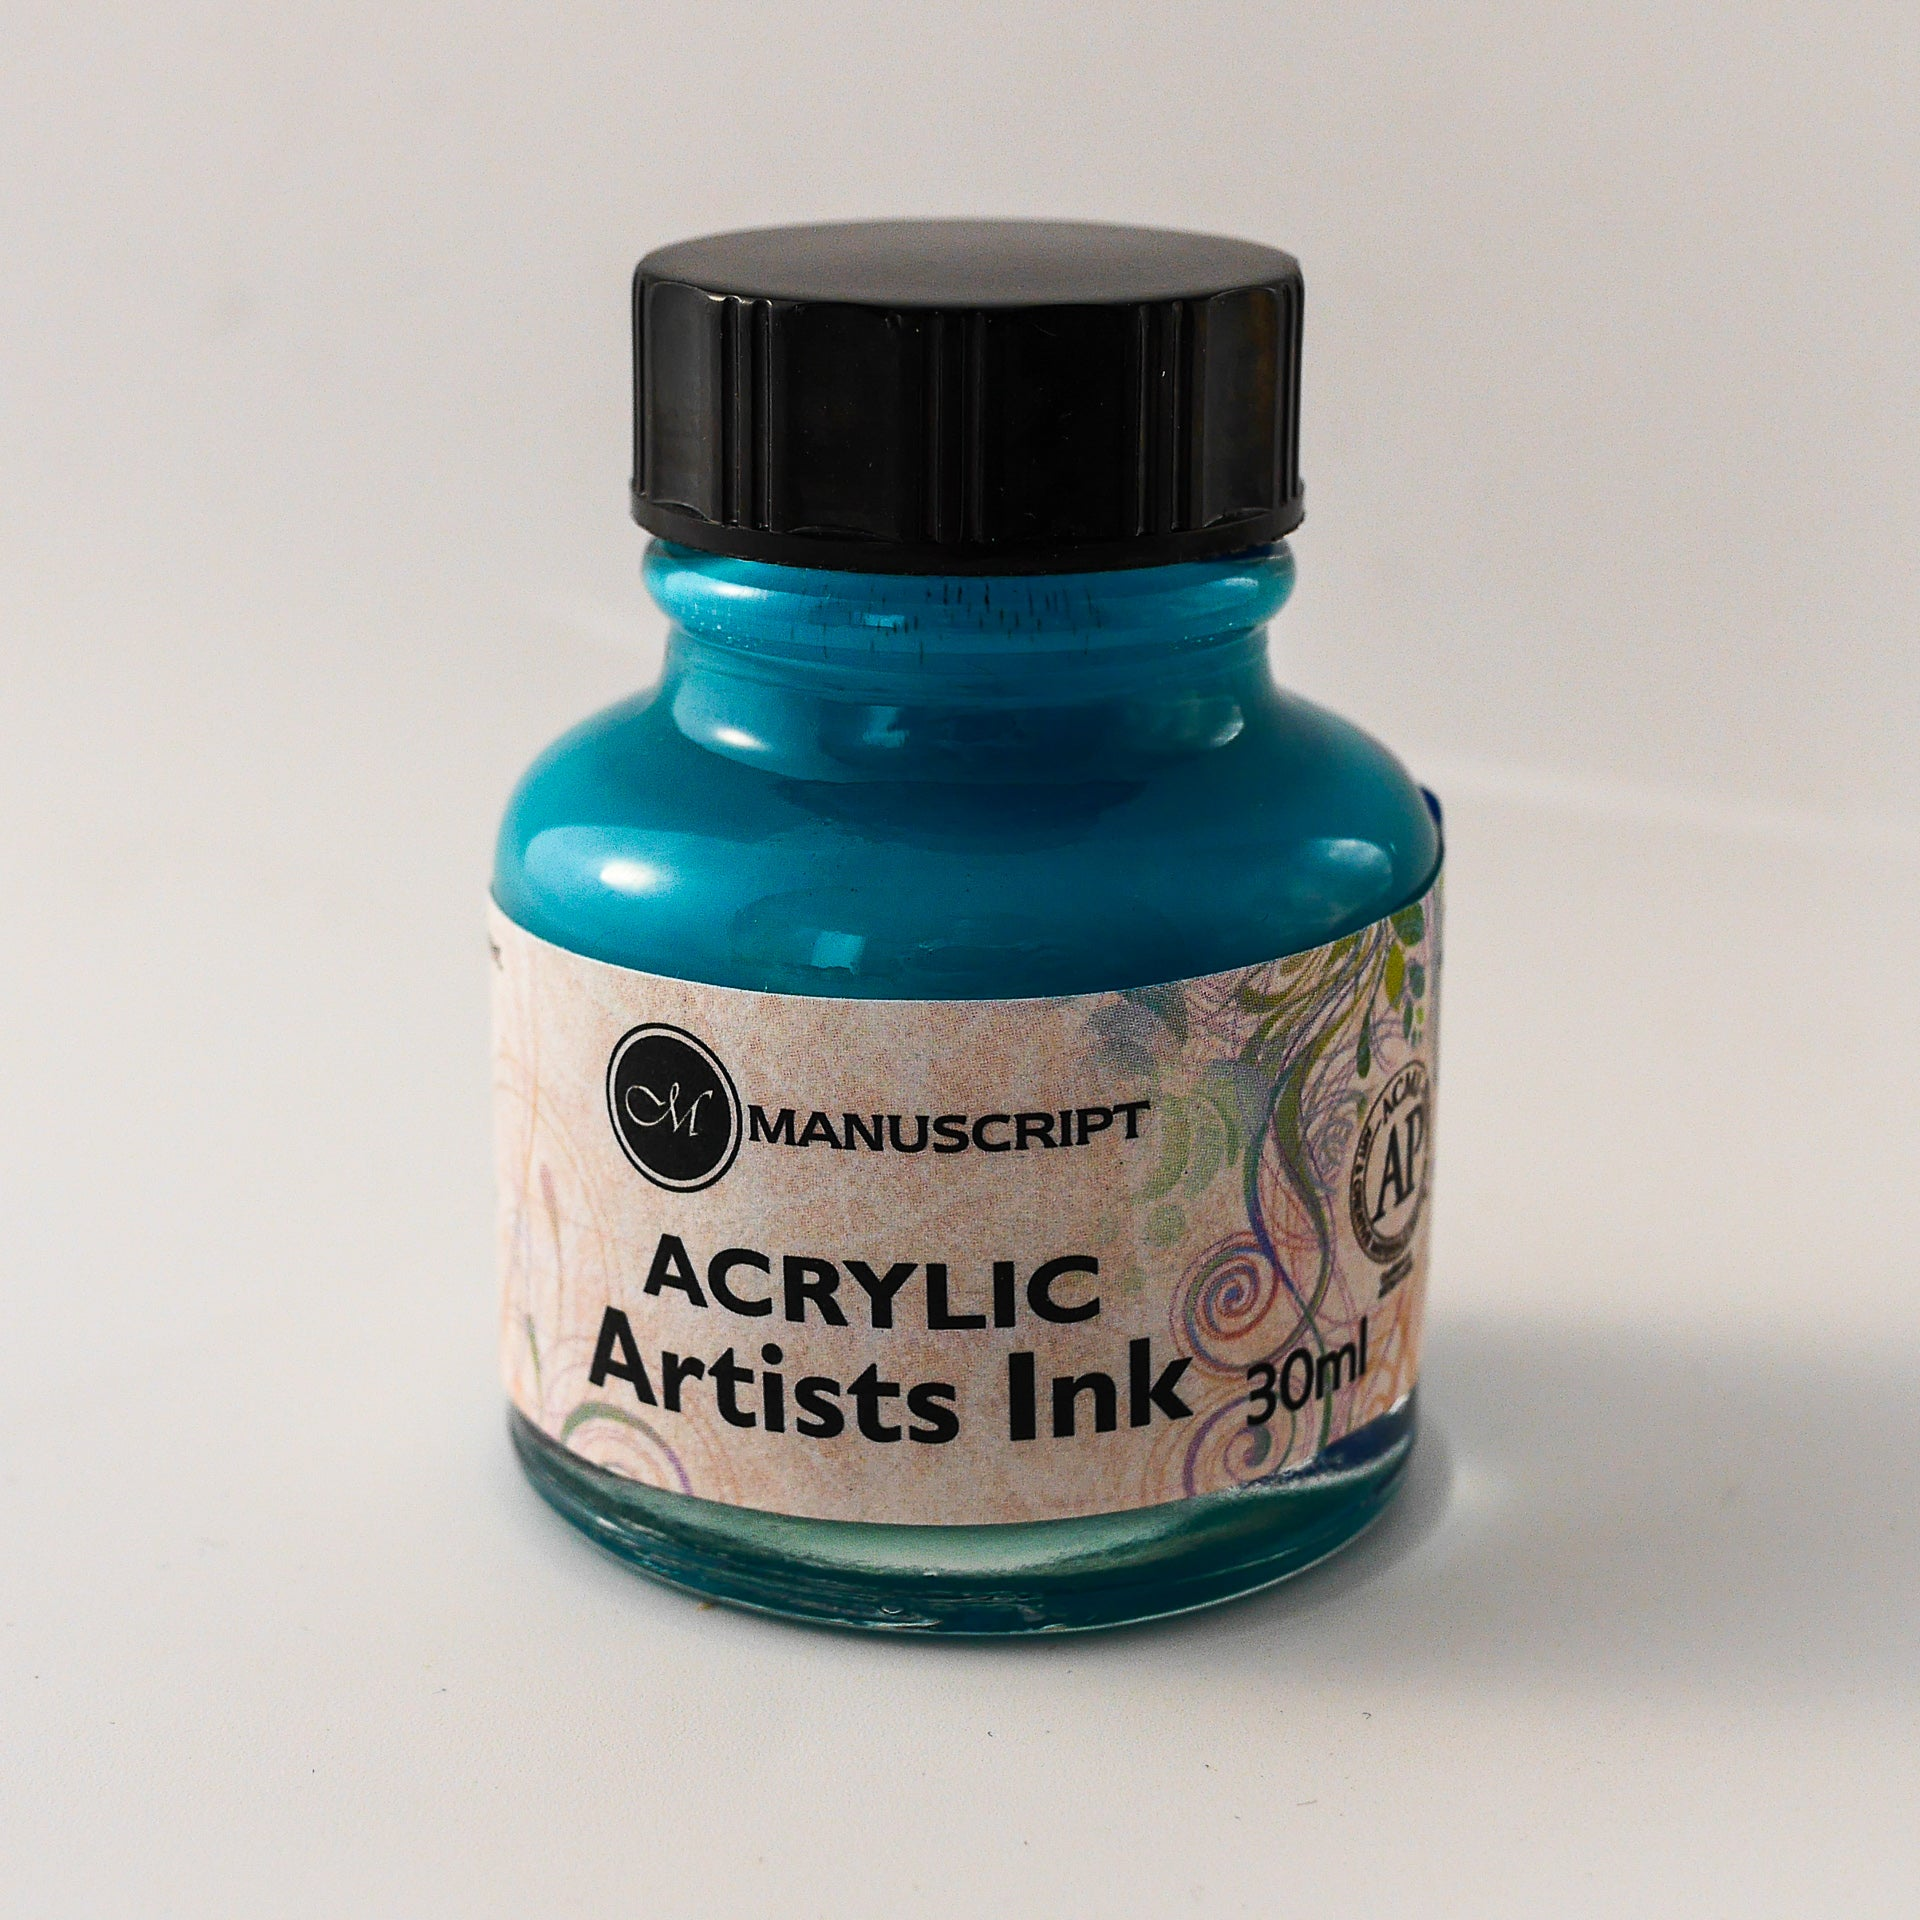 Manuscript acryl inkt (30ml) • turquoise